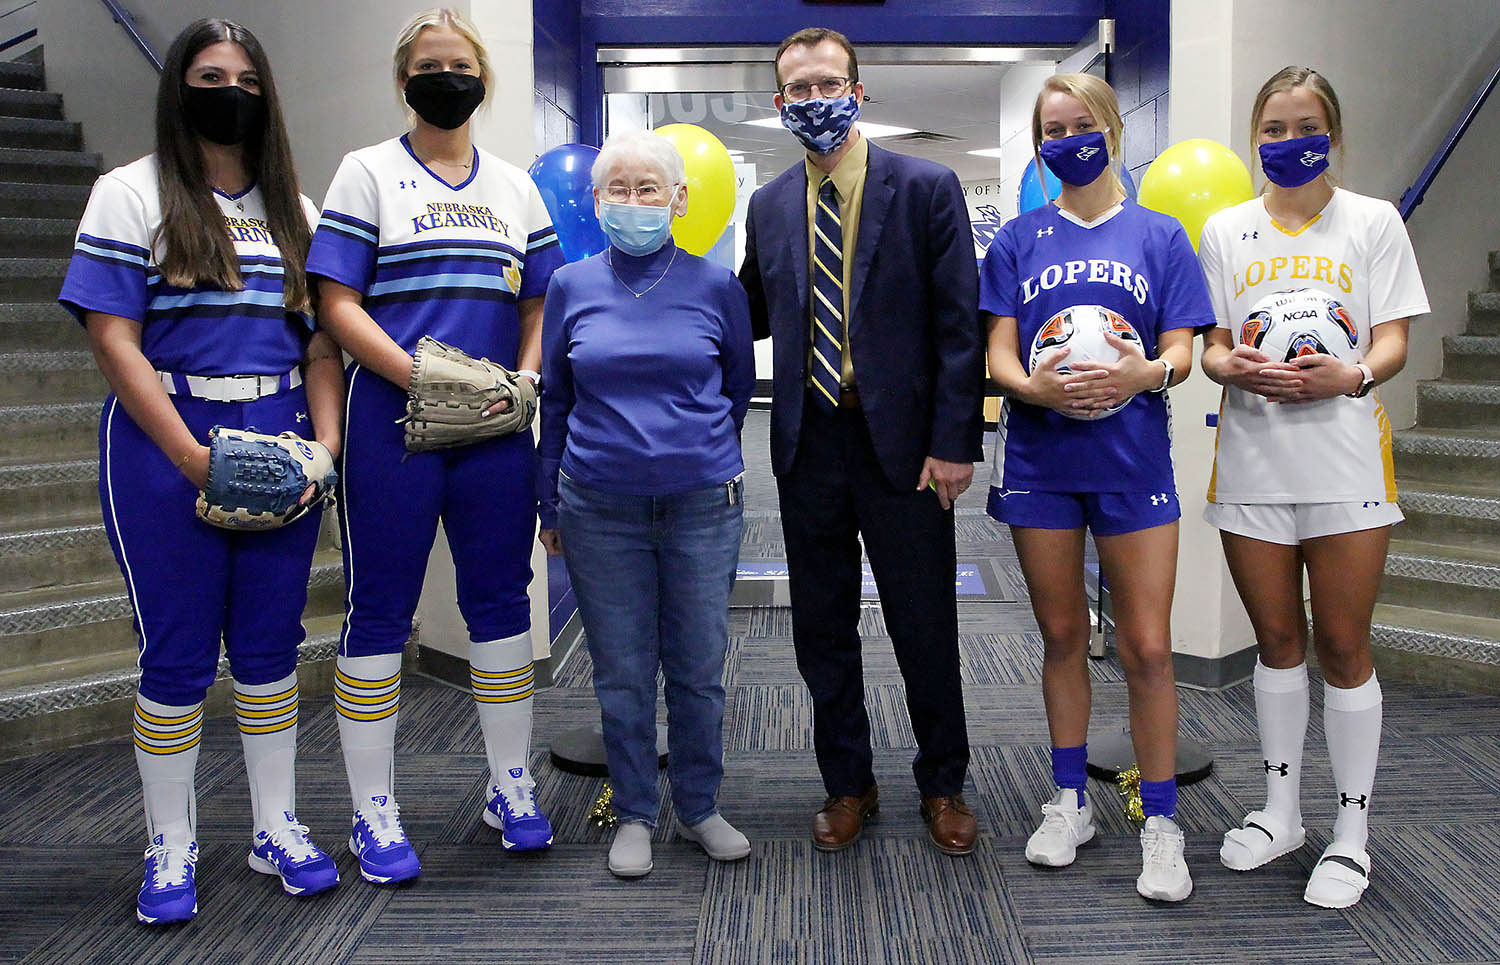 Donna Bamford, third from left, poses for a photo with UNK Athletic Director Marc Bauer and student-athletes from the Loper softball and soccer programs Tuesday during a dedication ceremony for the Donna Bamford Locker Room. Bamford provided funding to renovate a locker room for the softball and soccer teams. (Photos by Tyler Ellyson, UNK Communications)